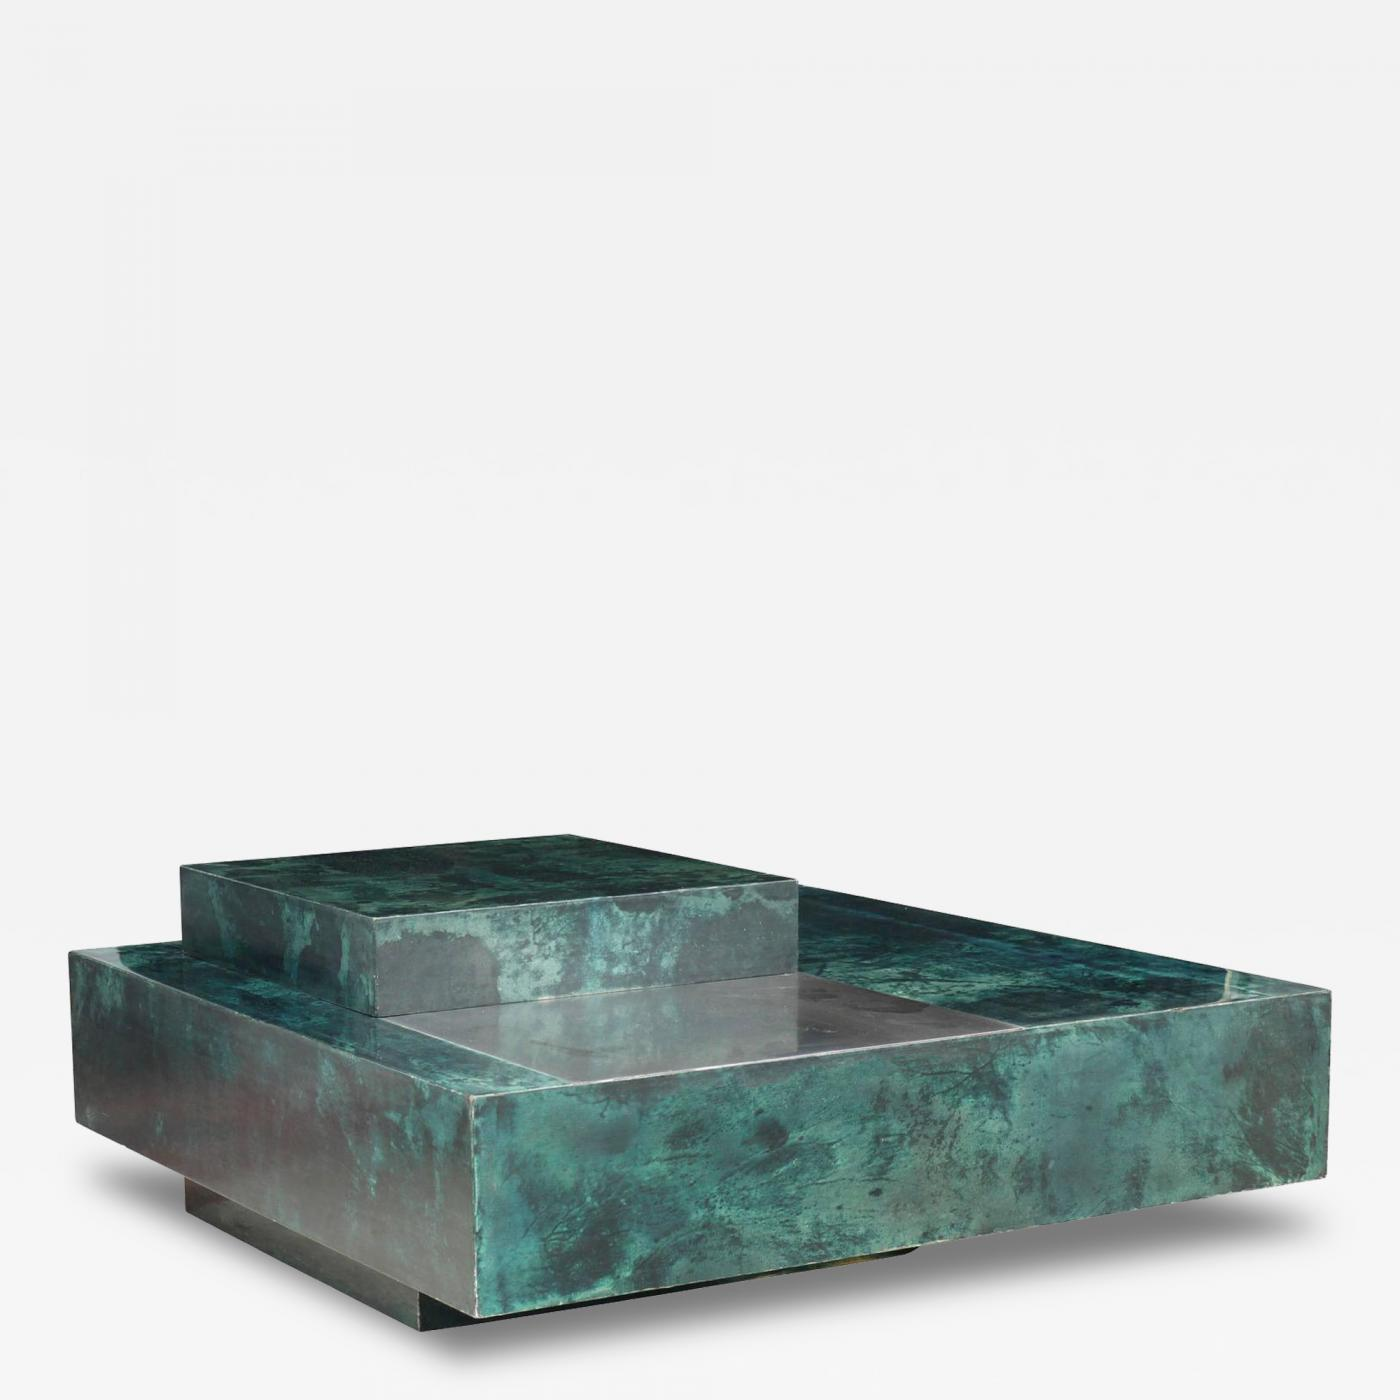 Aldo Tura Aldo Tura Emerald Green Goatskin Coffee Table and Bar